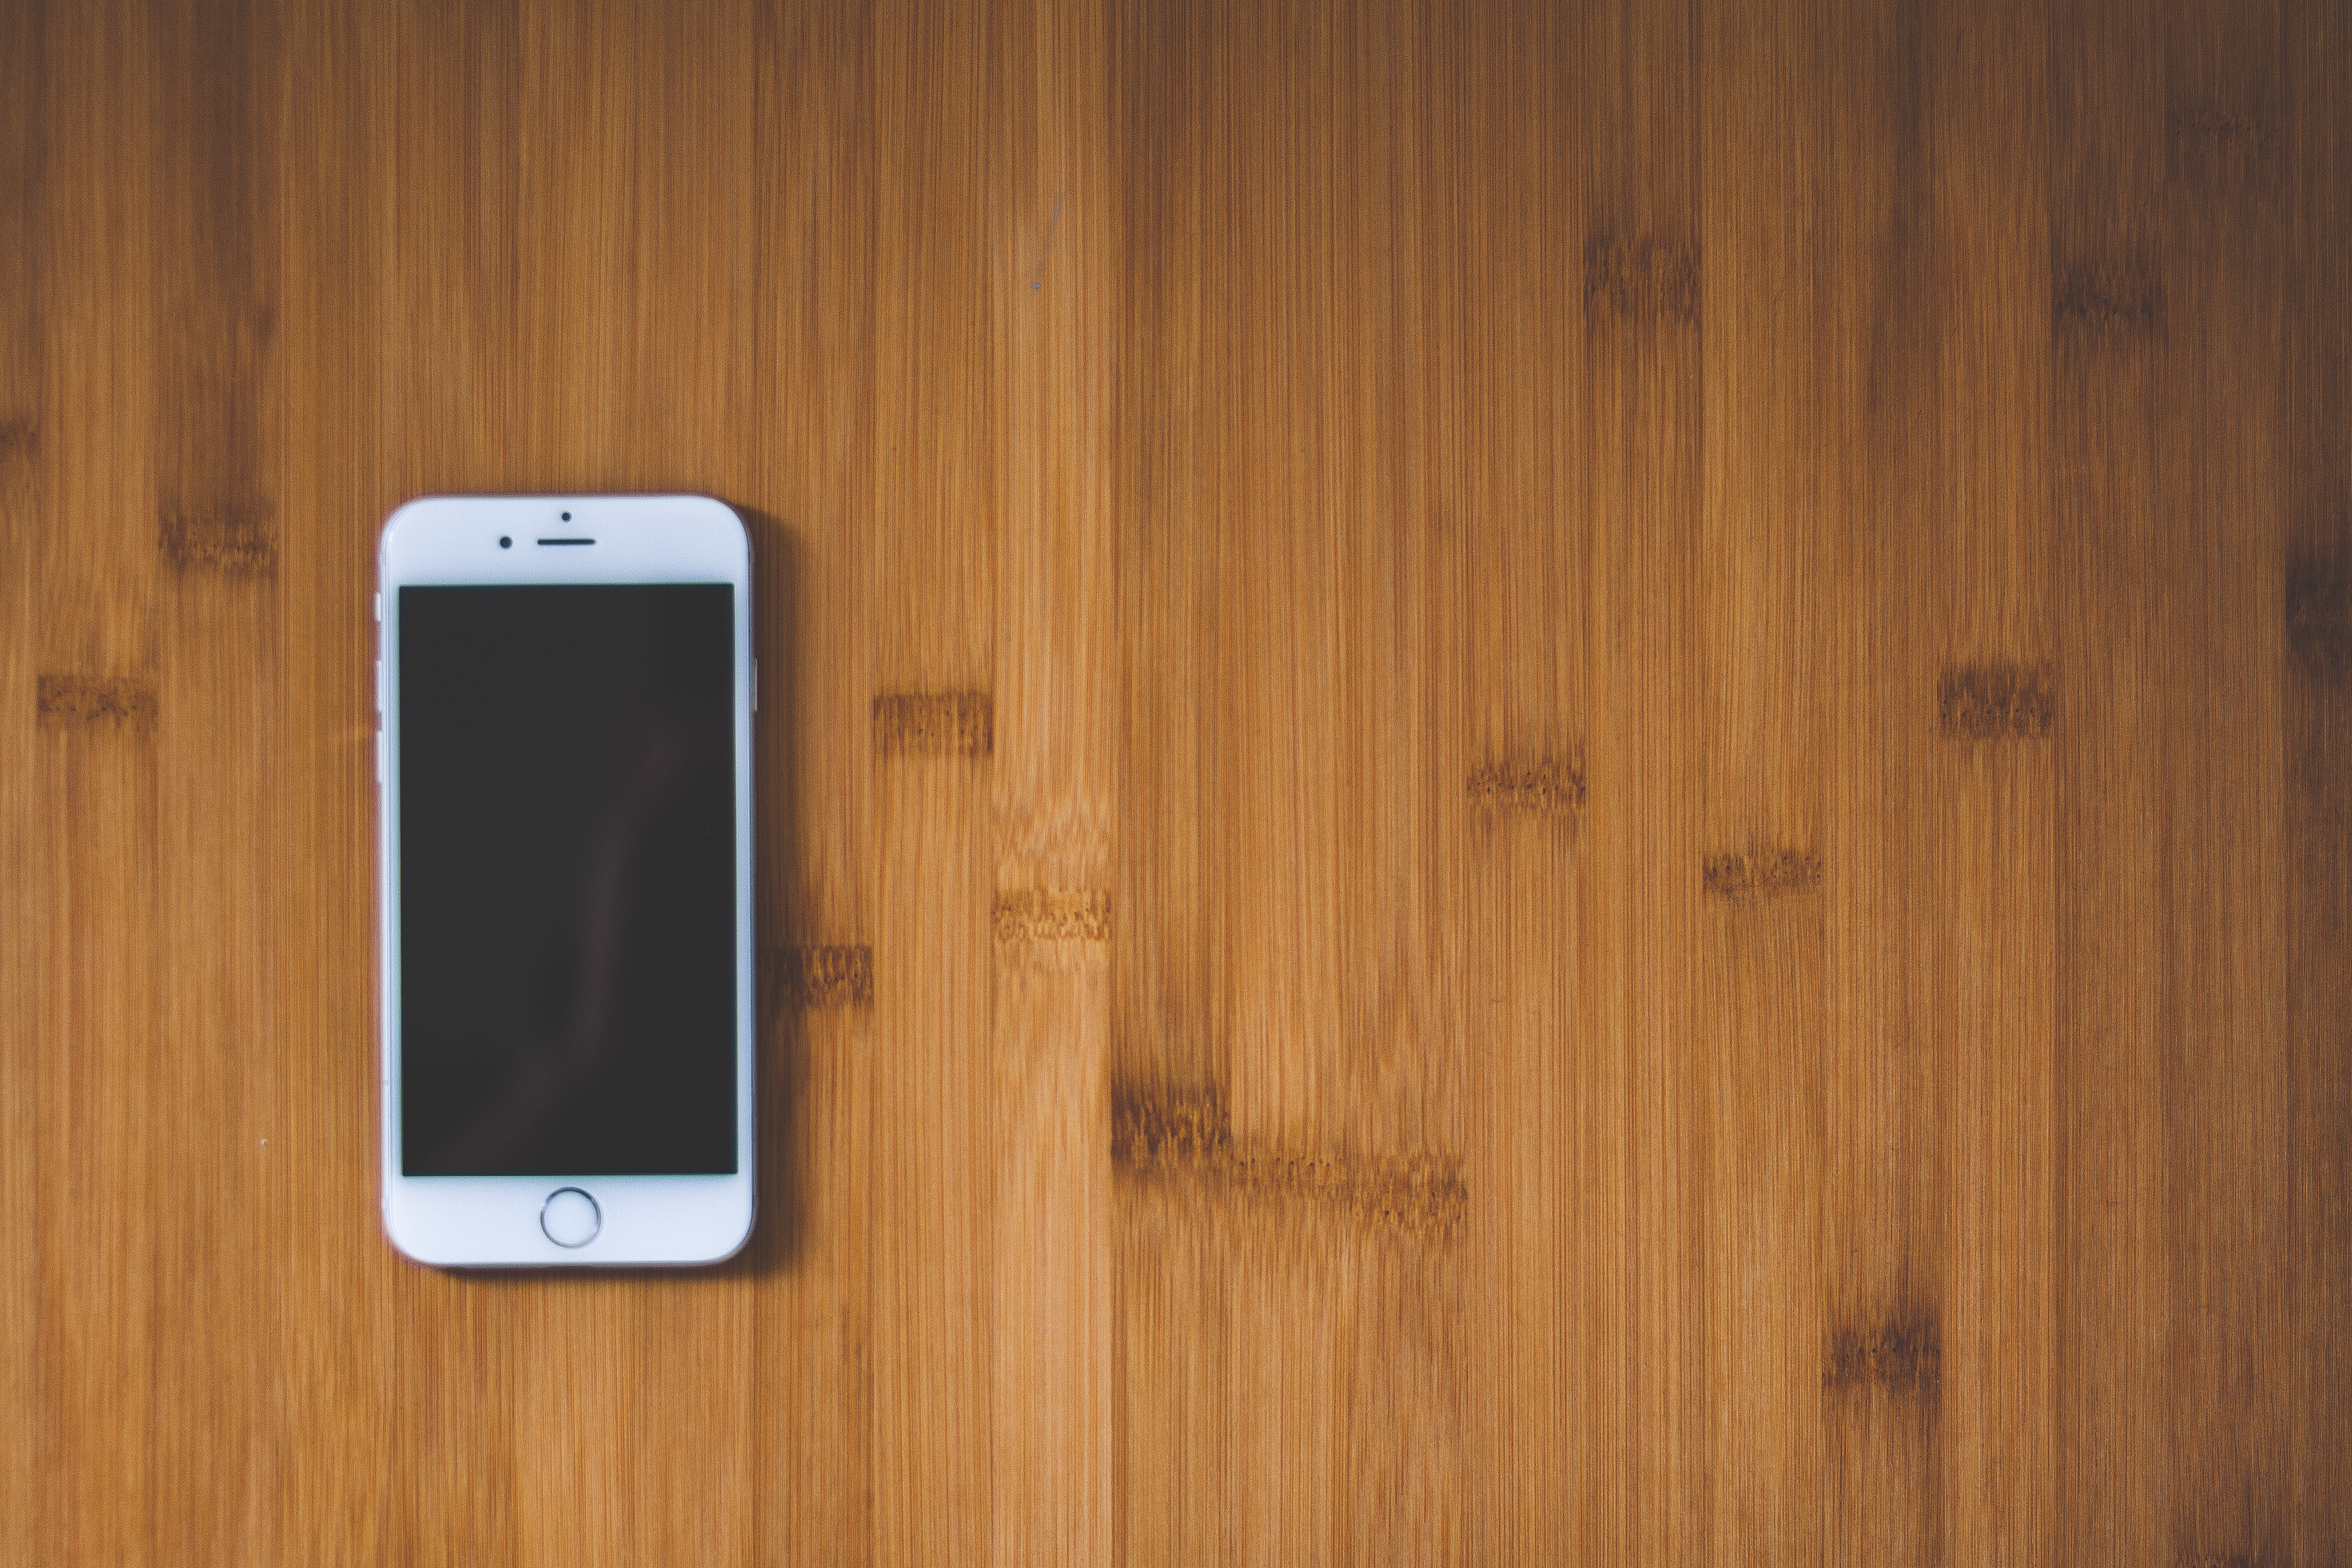 Apple Wallpaper Iphone 7 Silver Iphone 6 On Brown Wooden Surface 183 Free Stock Photo